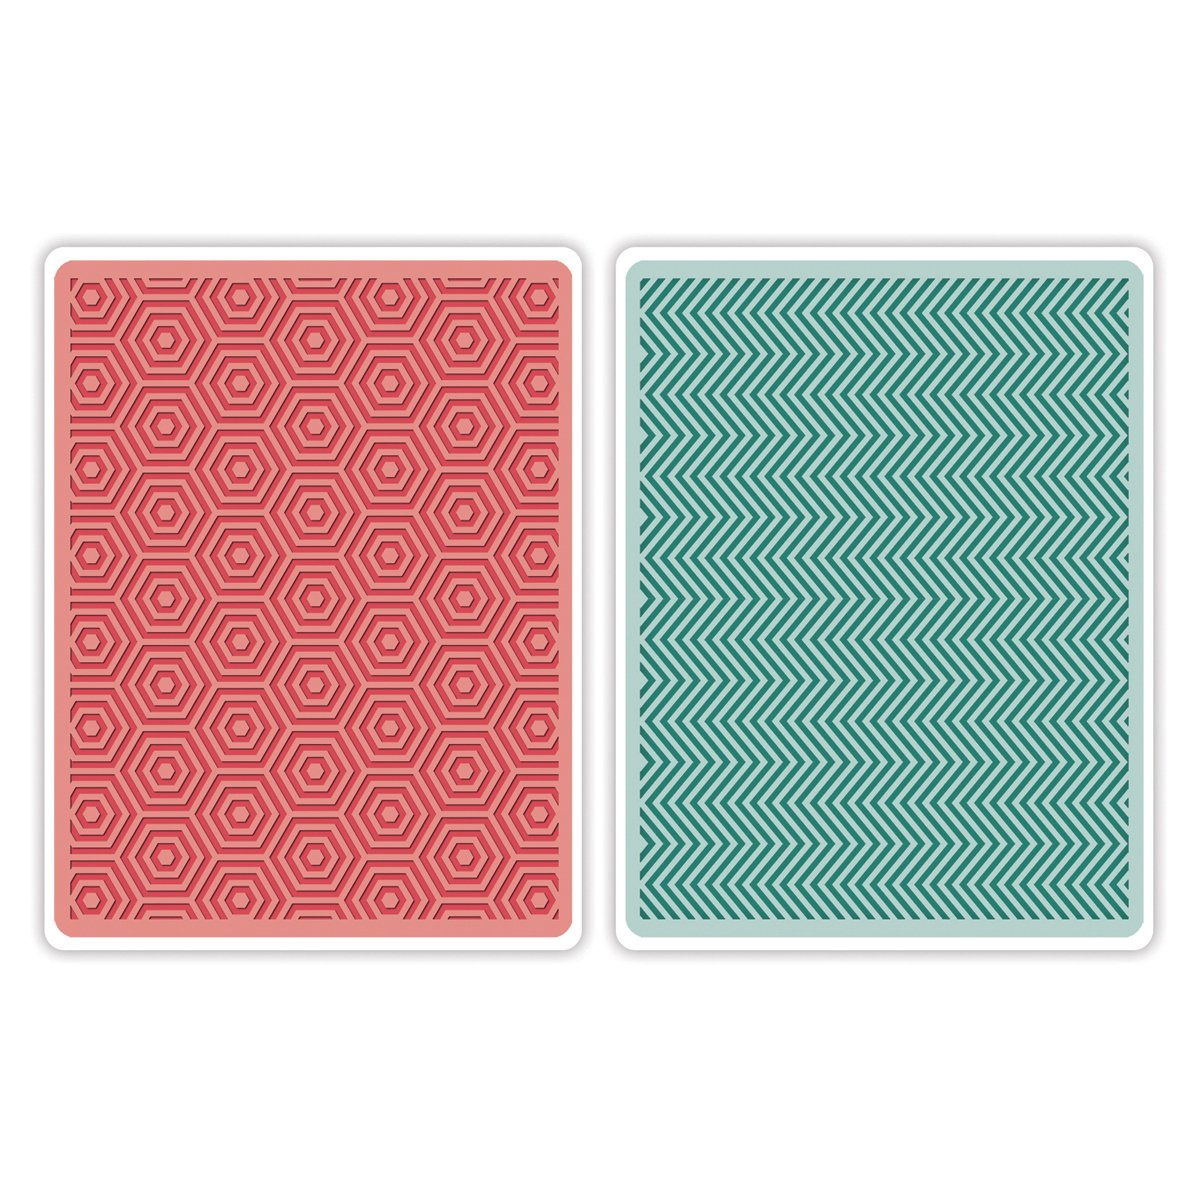 Sizzix Textured Impressions A2 Embossing Folders 2/Pkg-Hexagons & Chevrons By Echo Park 659744